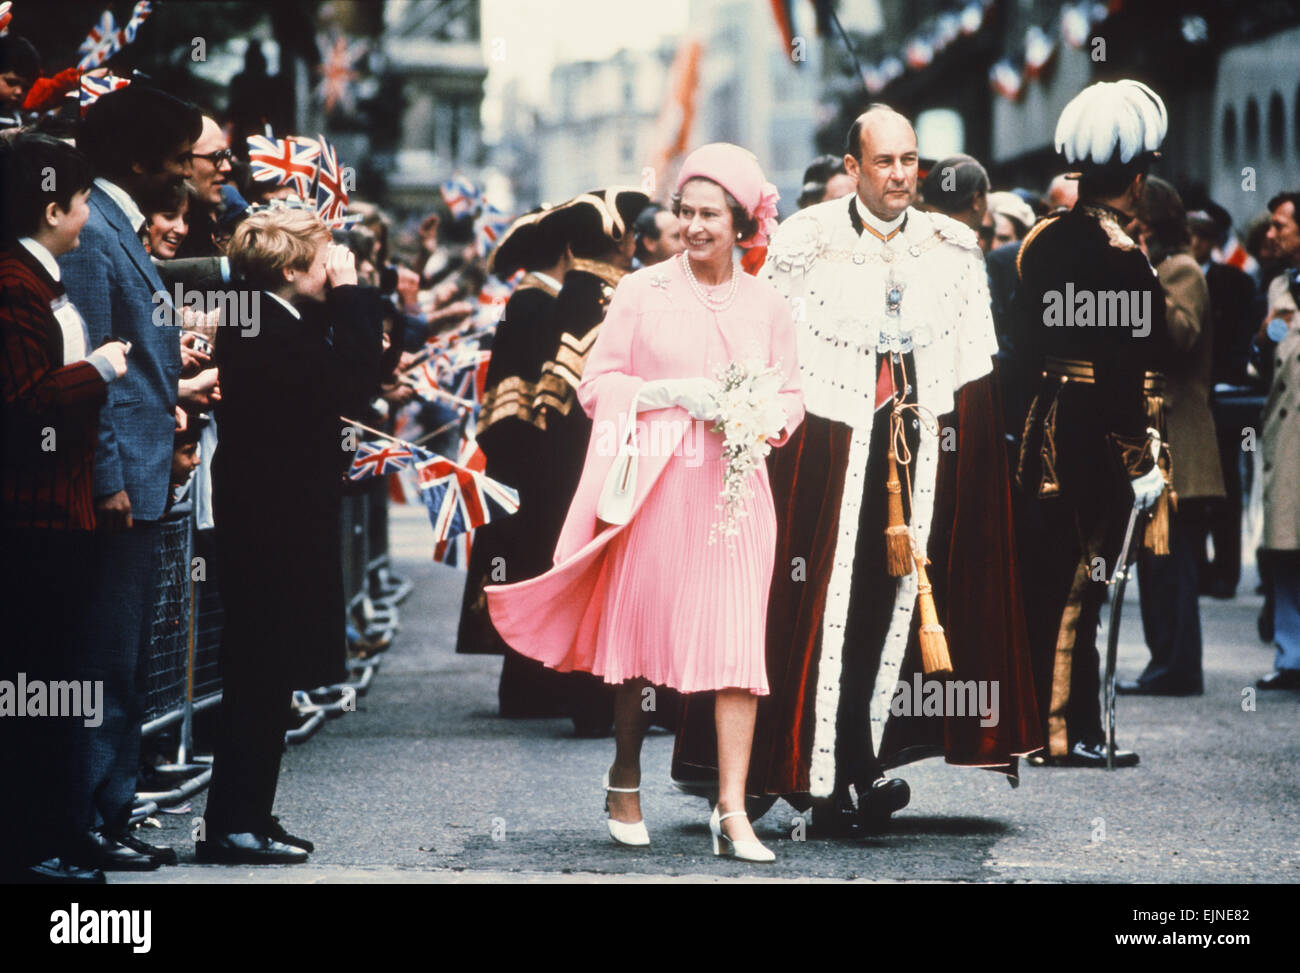 Queen Elizabeth II & Lord Mayor of London walk to Guildhall, for lunch, after Thanksgiving Service at St Pauls - Stock Image